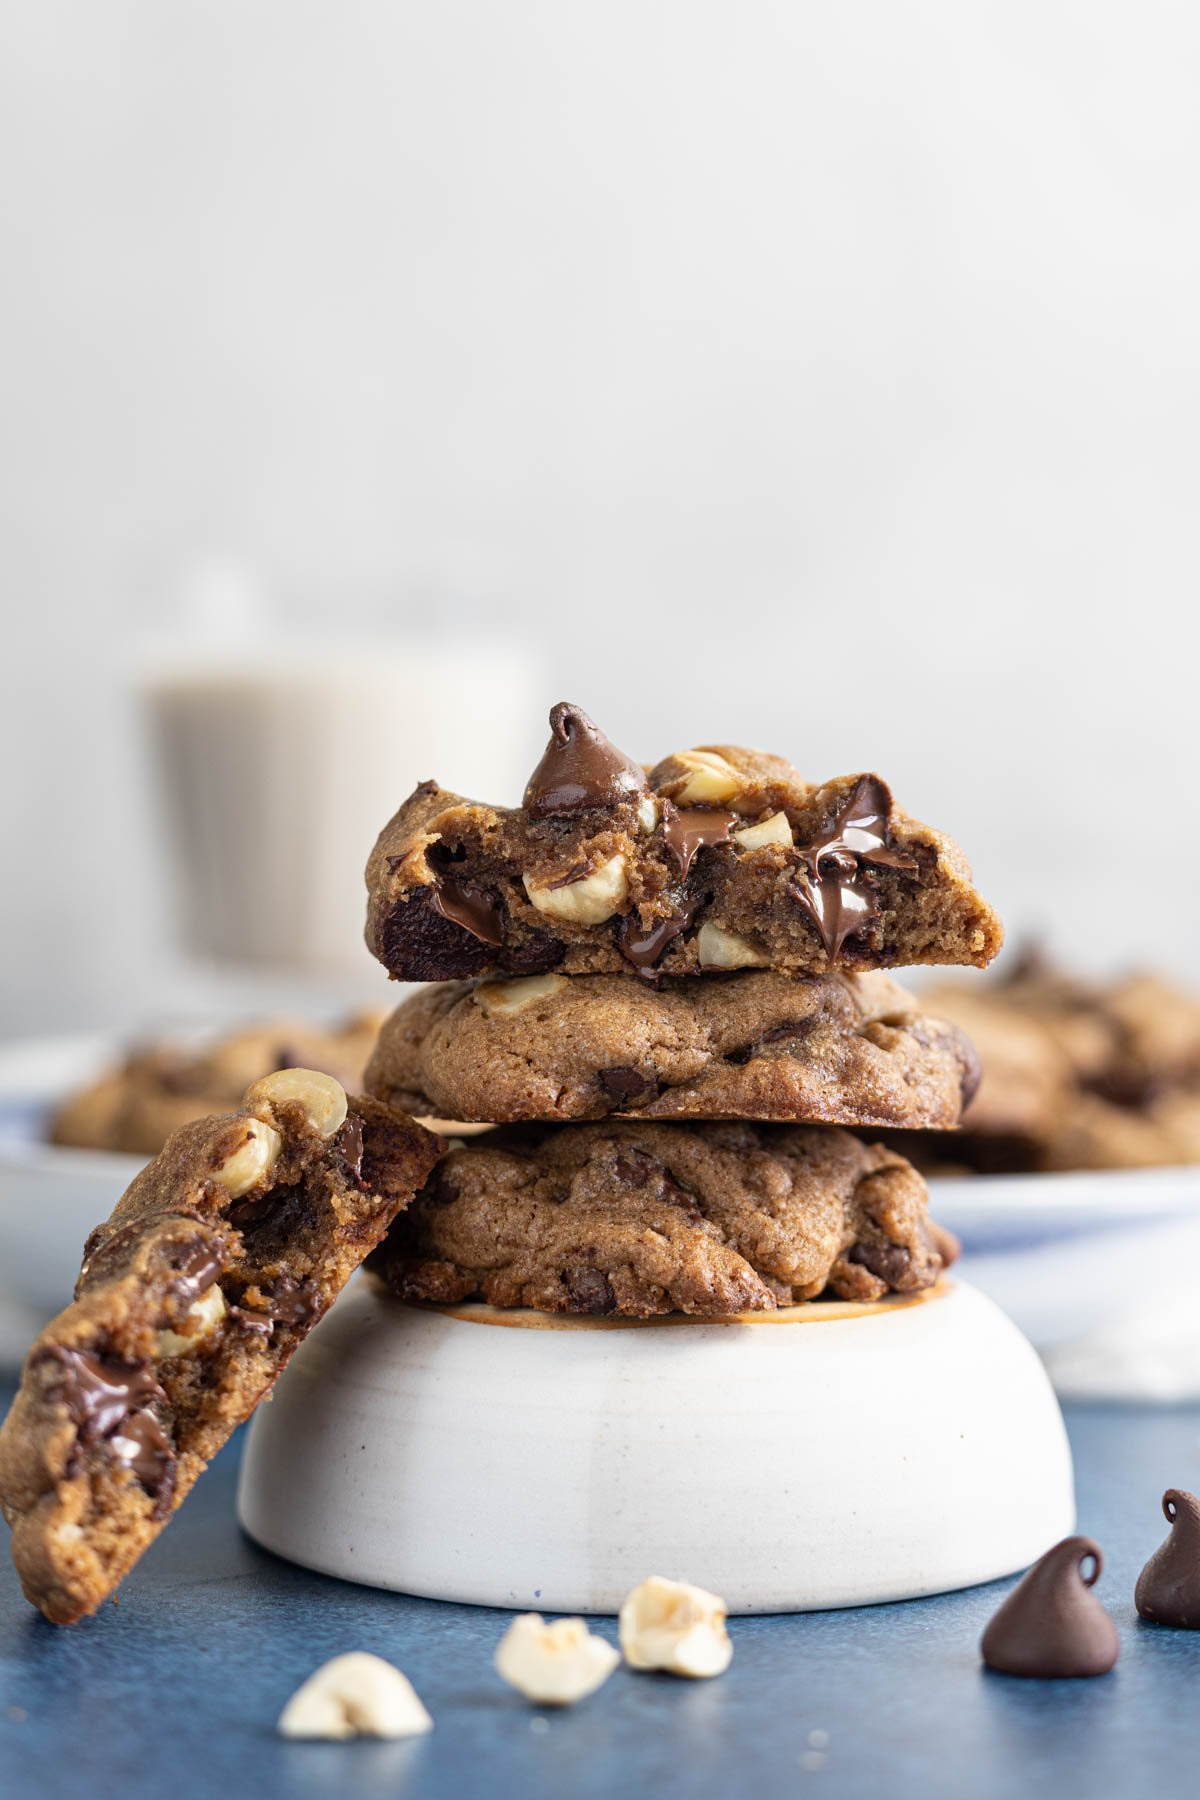 Three double chocolate chip hazelnut cookies on a bowl